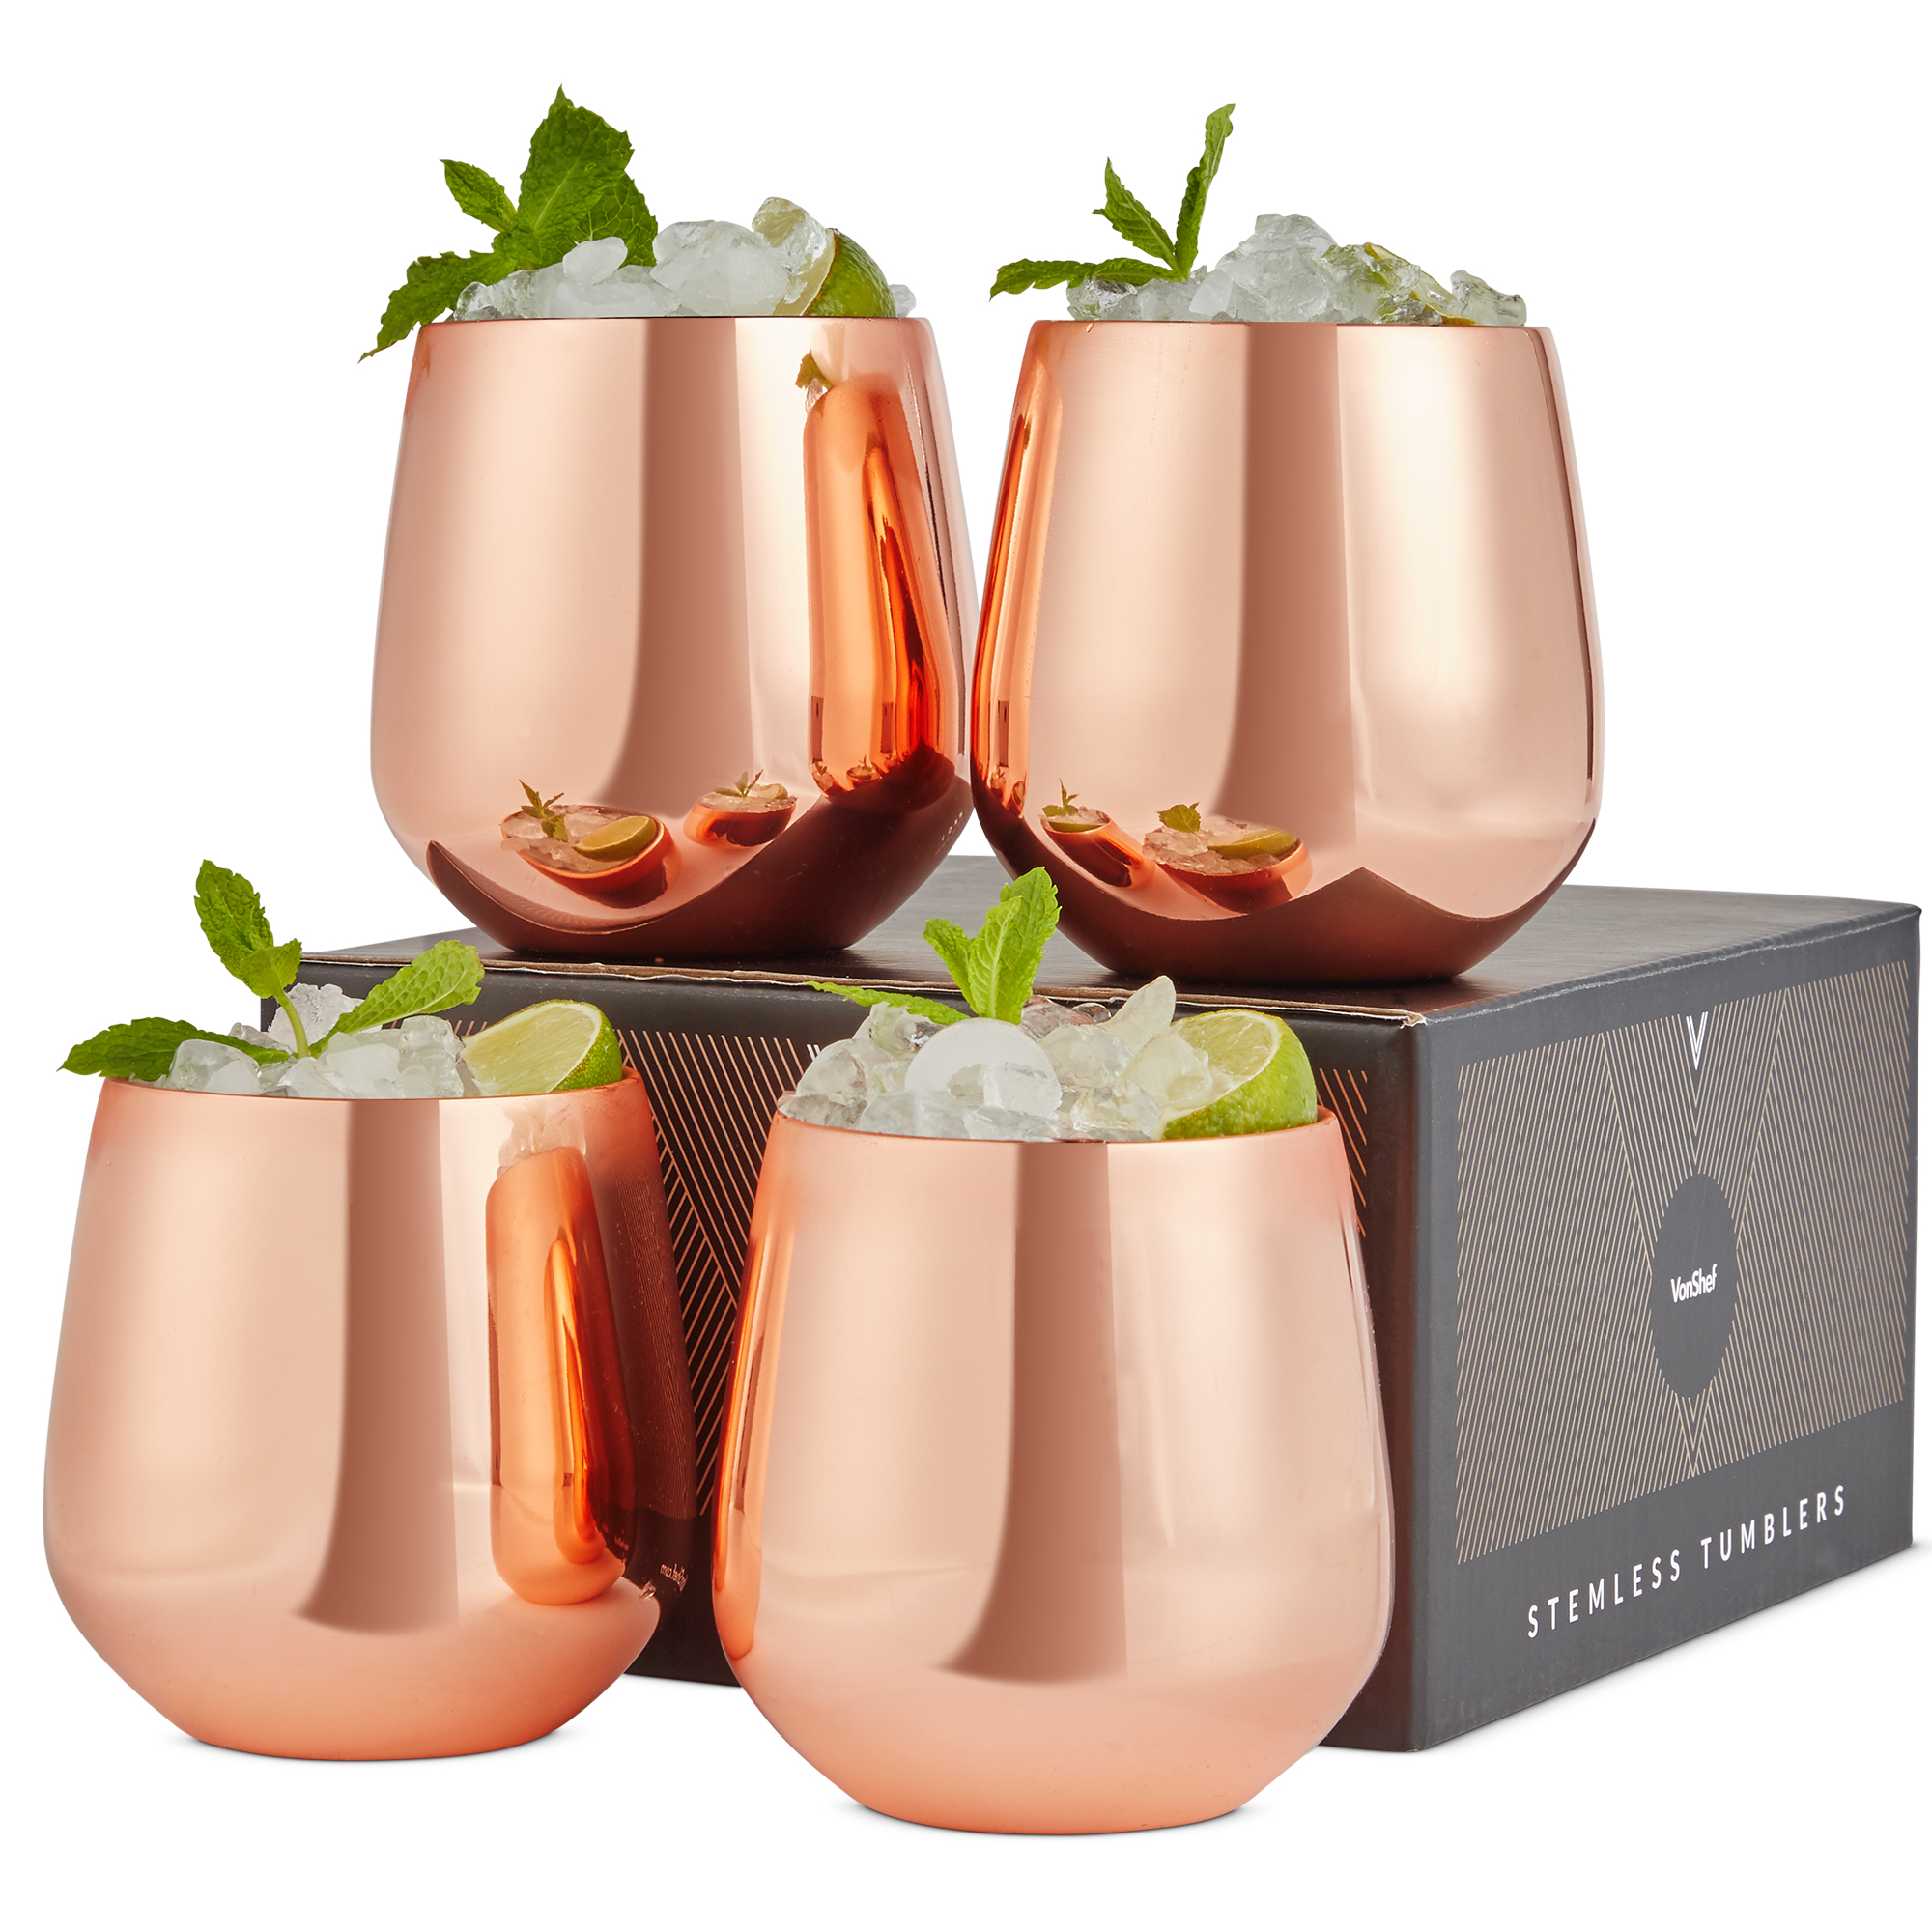 Details About Vonshef Set Of 4 Copper Stemless Wine Glasses 12oz Stainless Steel With Gift Box